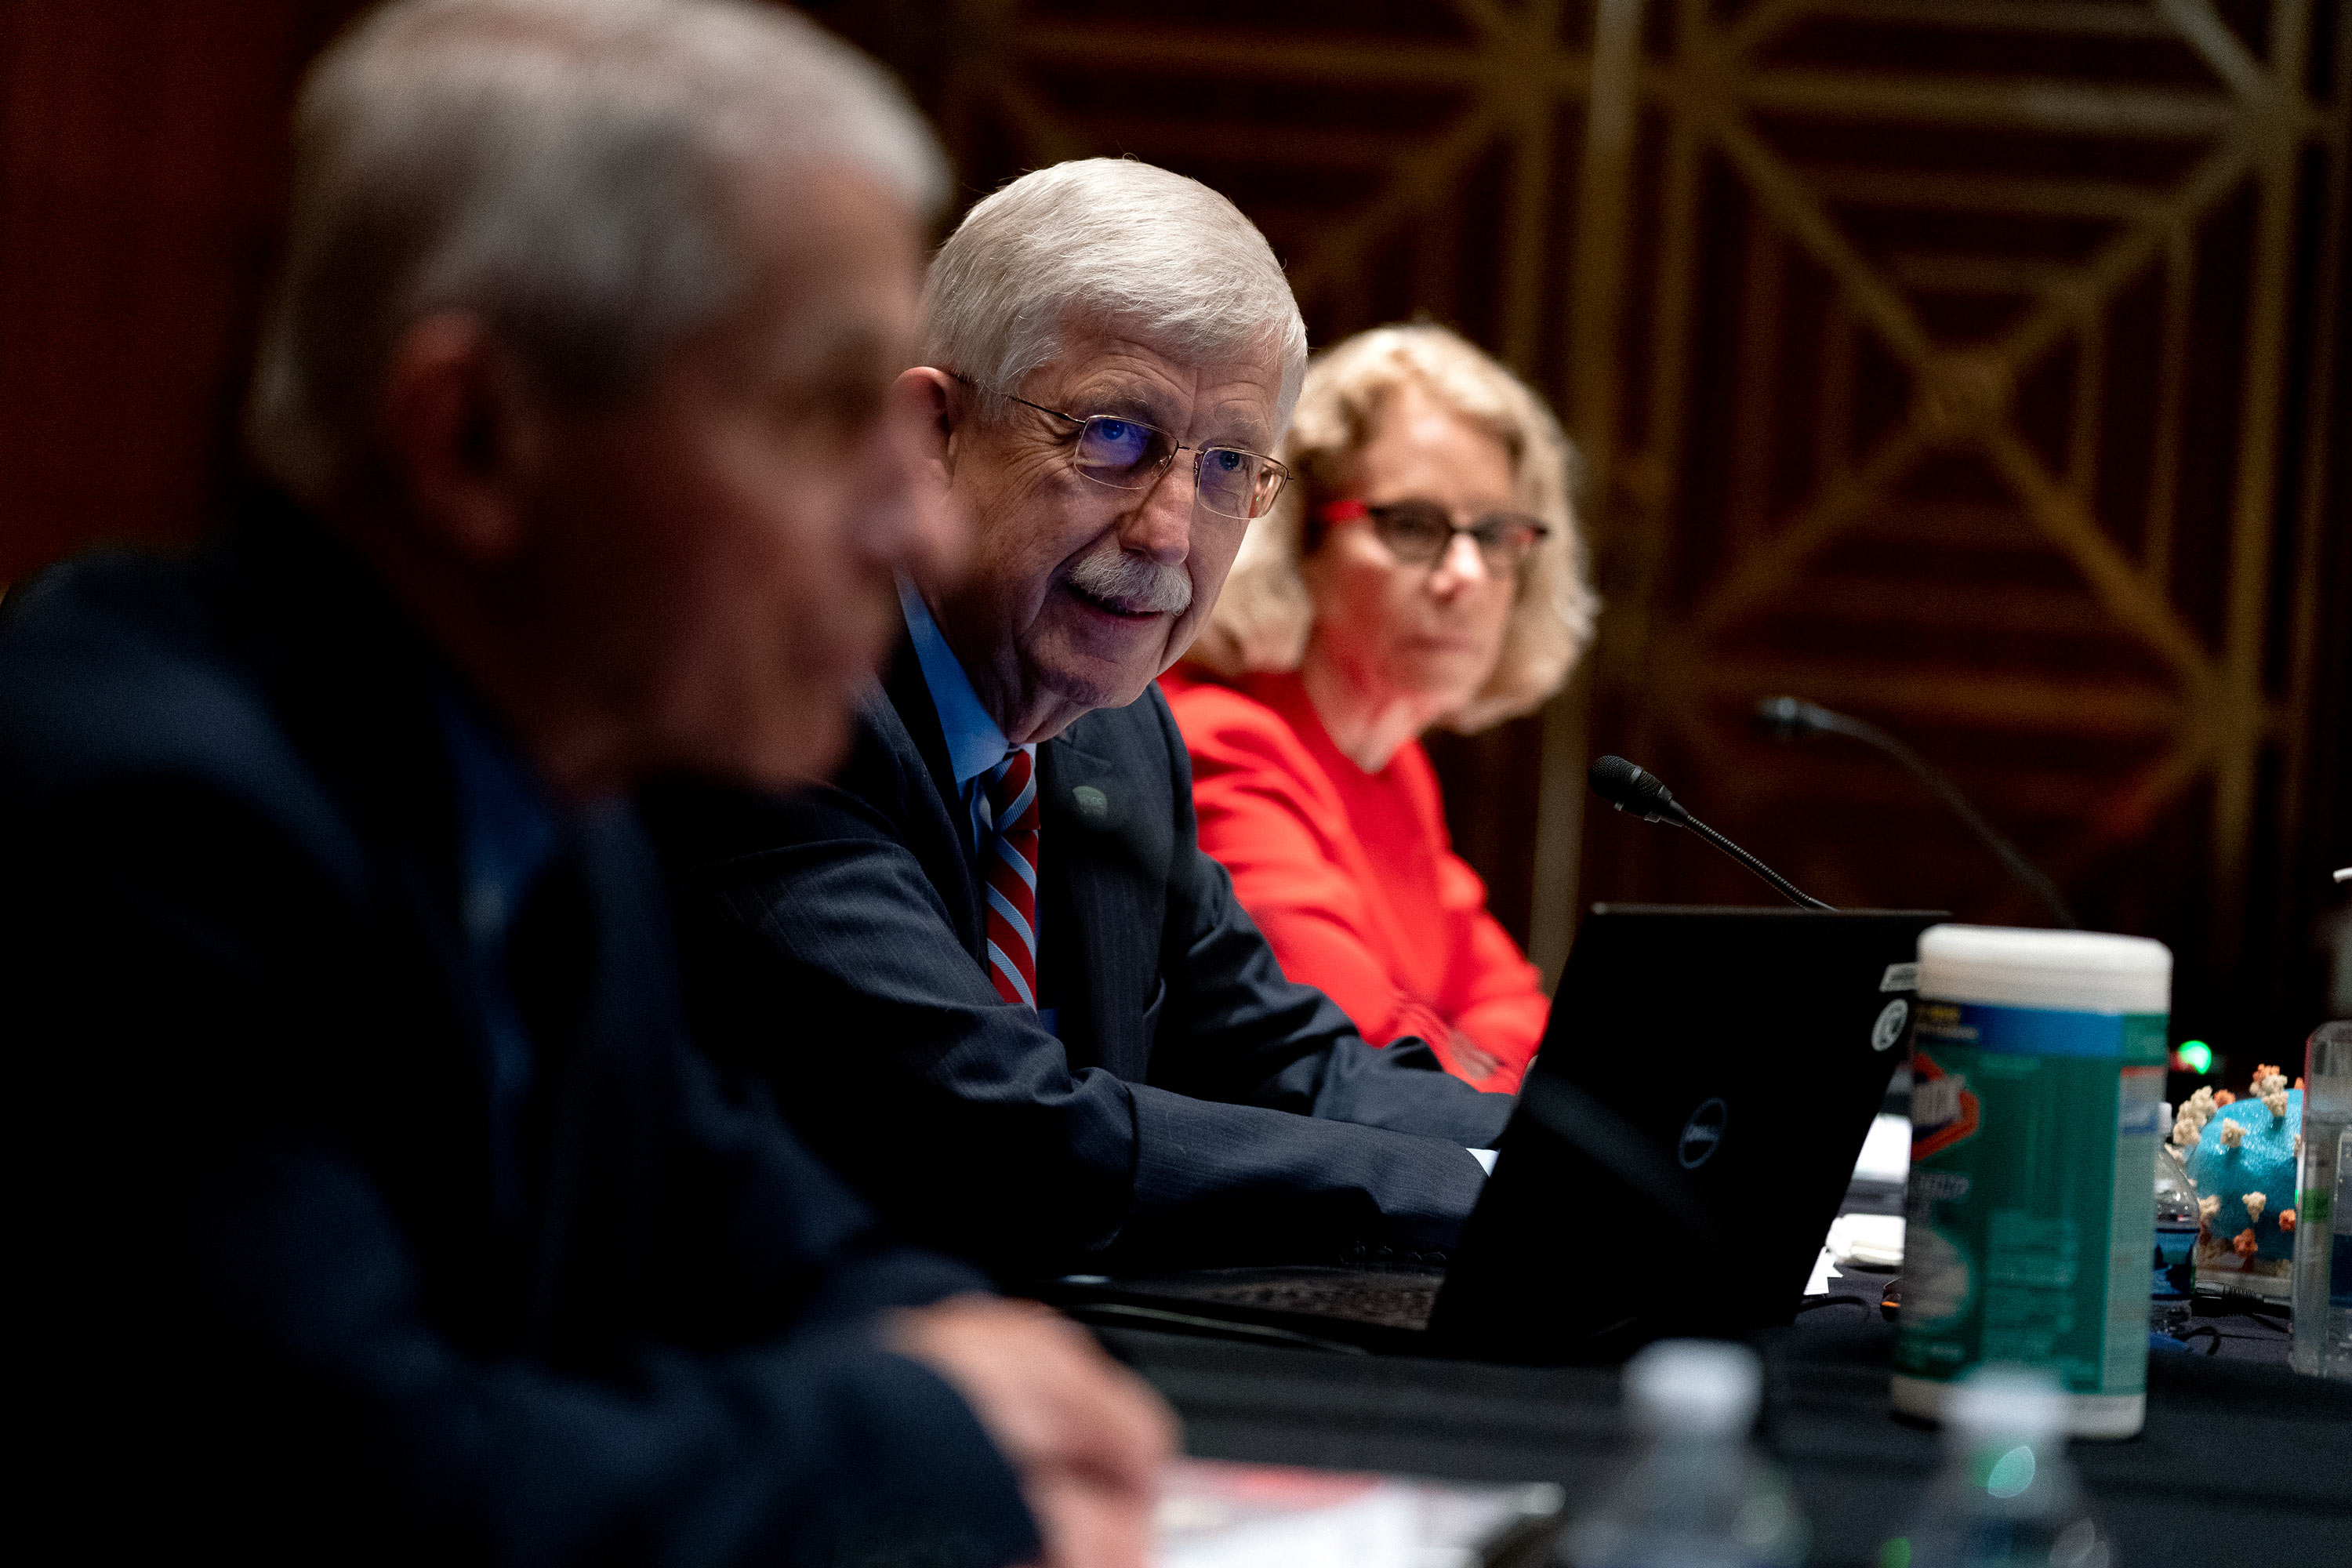 Dr. Francis Collins, director of the U.S. National Institutes of Health, speaks during a Senate Appropriations Subcommittee hearing on May 26 on Capitol Hill in Washington, D.C.